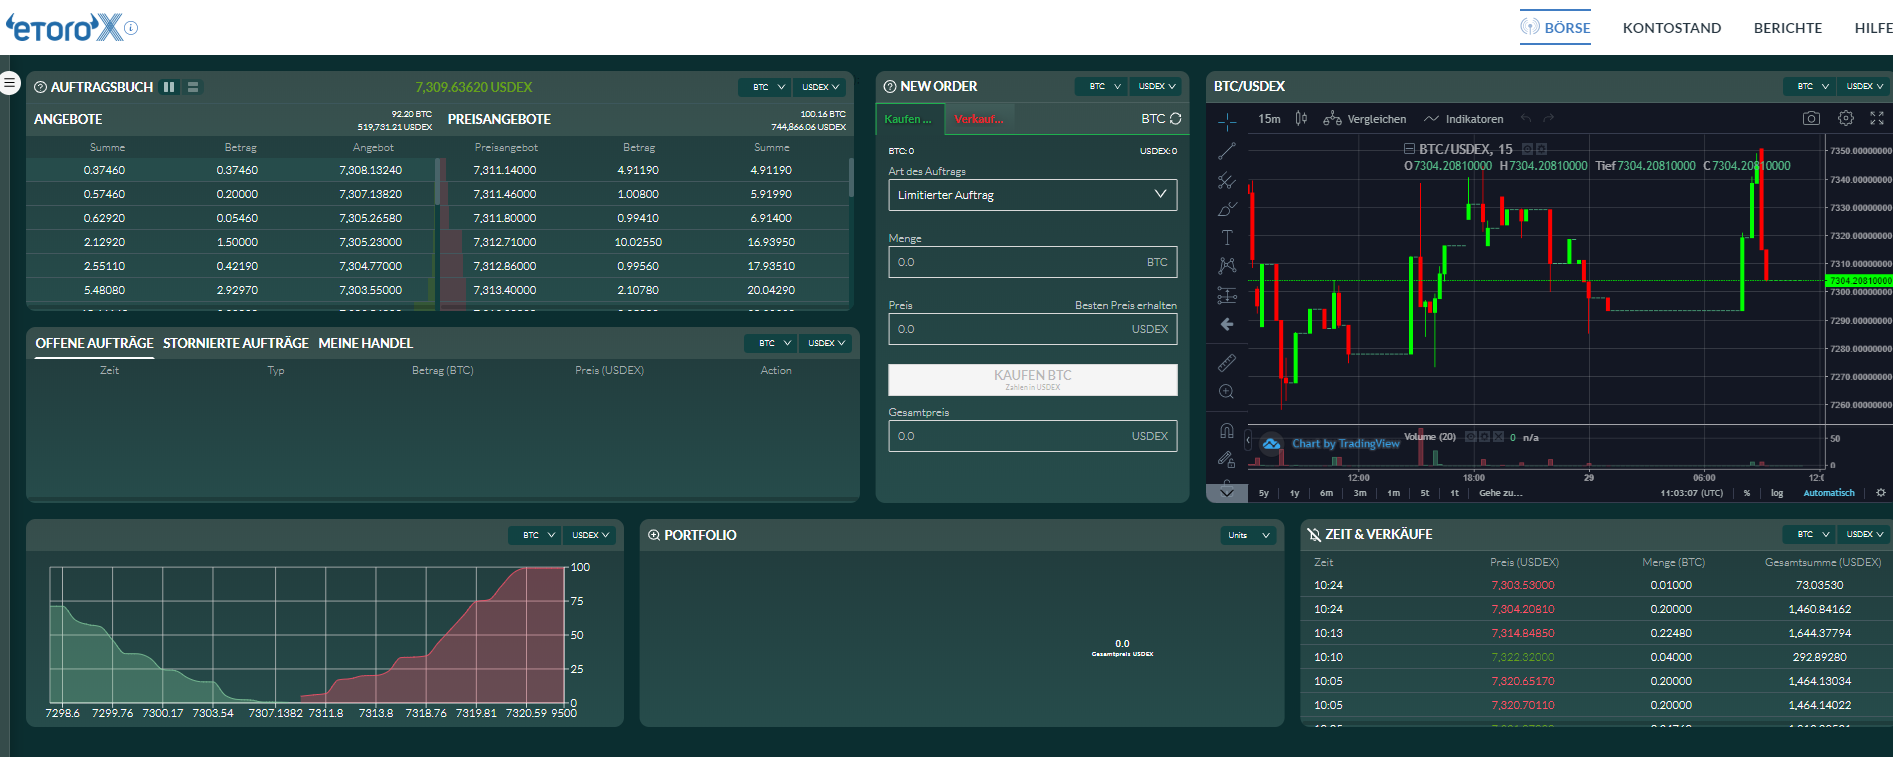 eToroX Screenshot